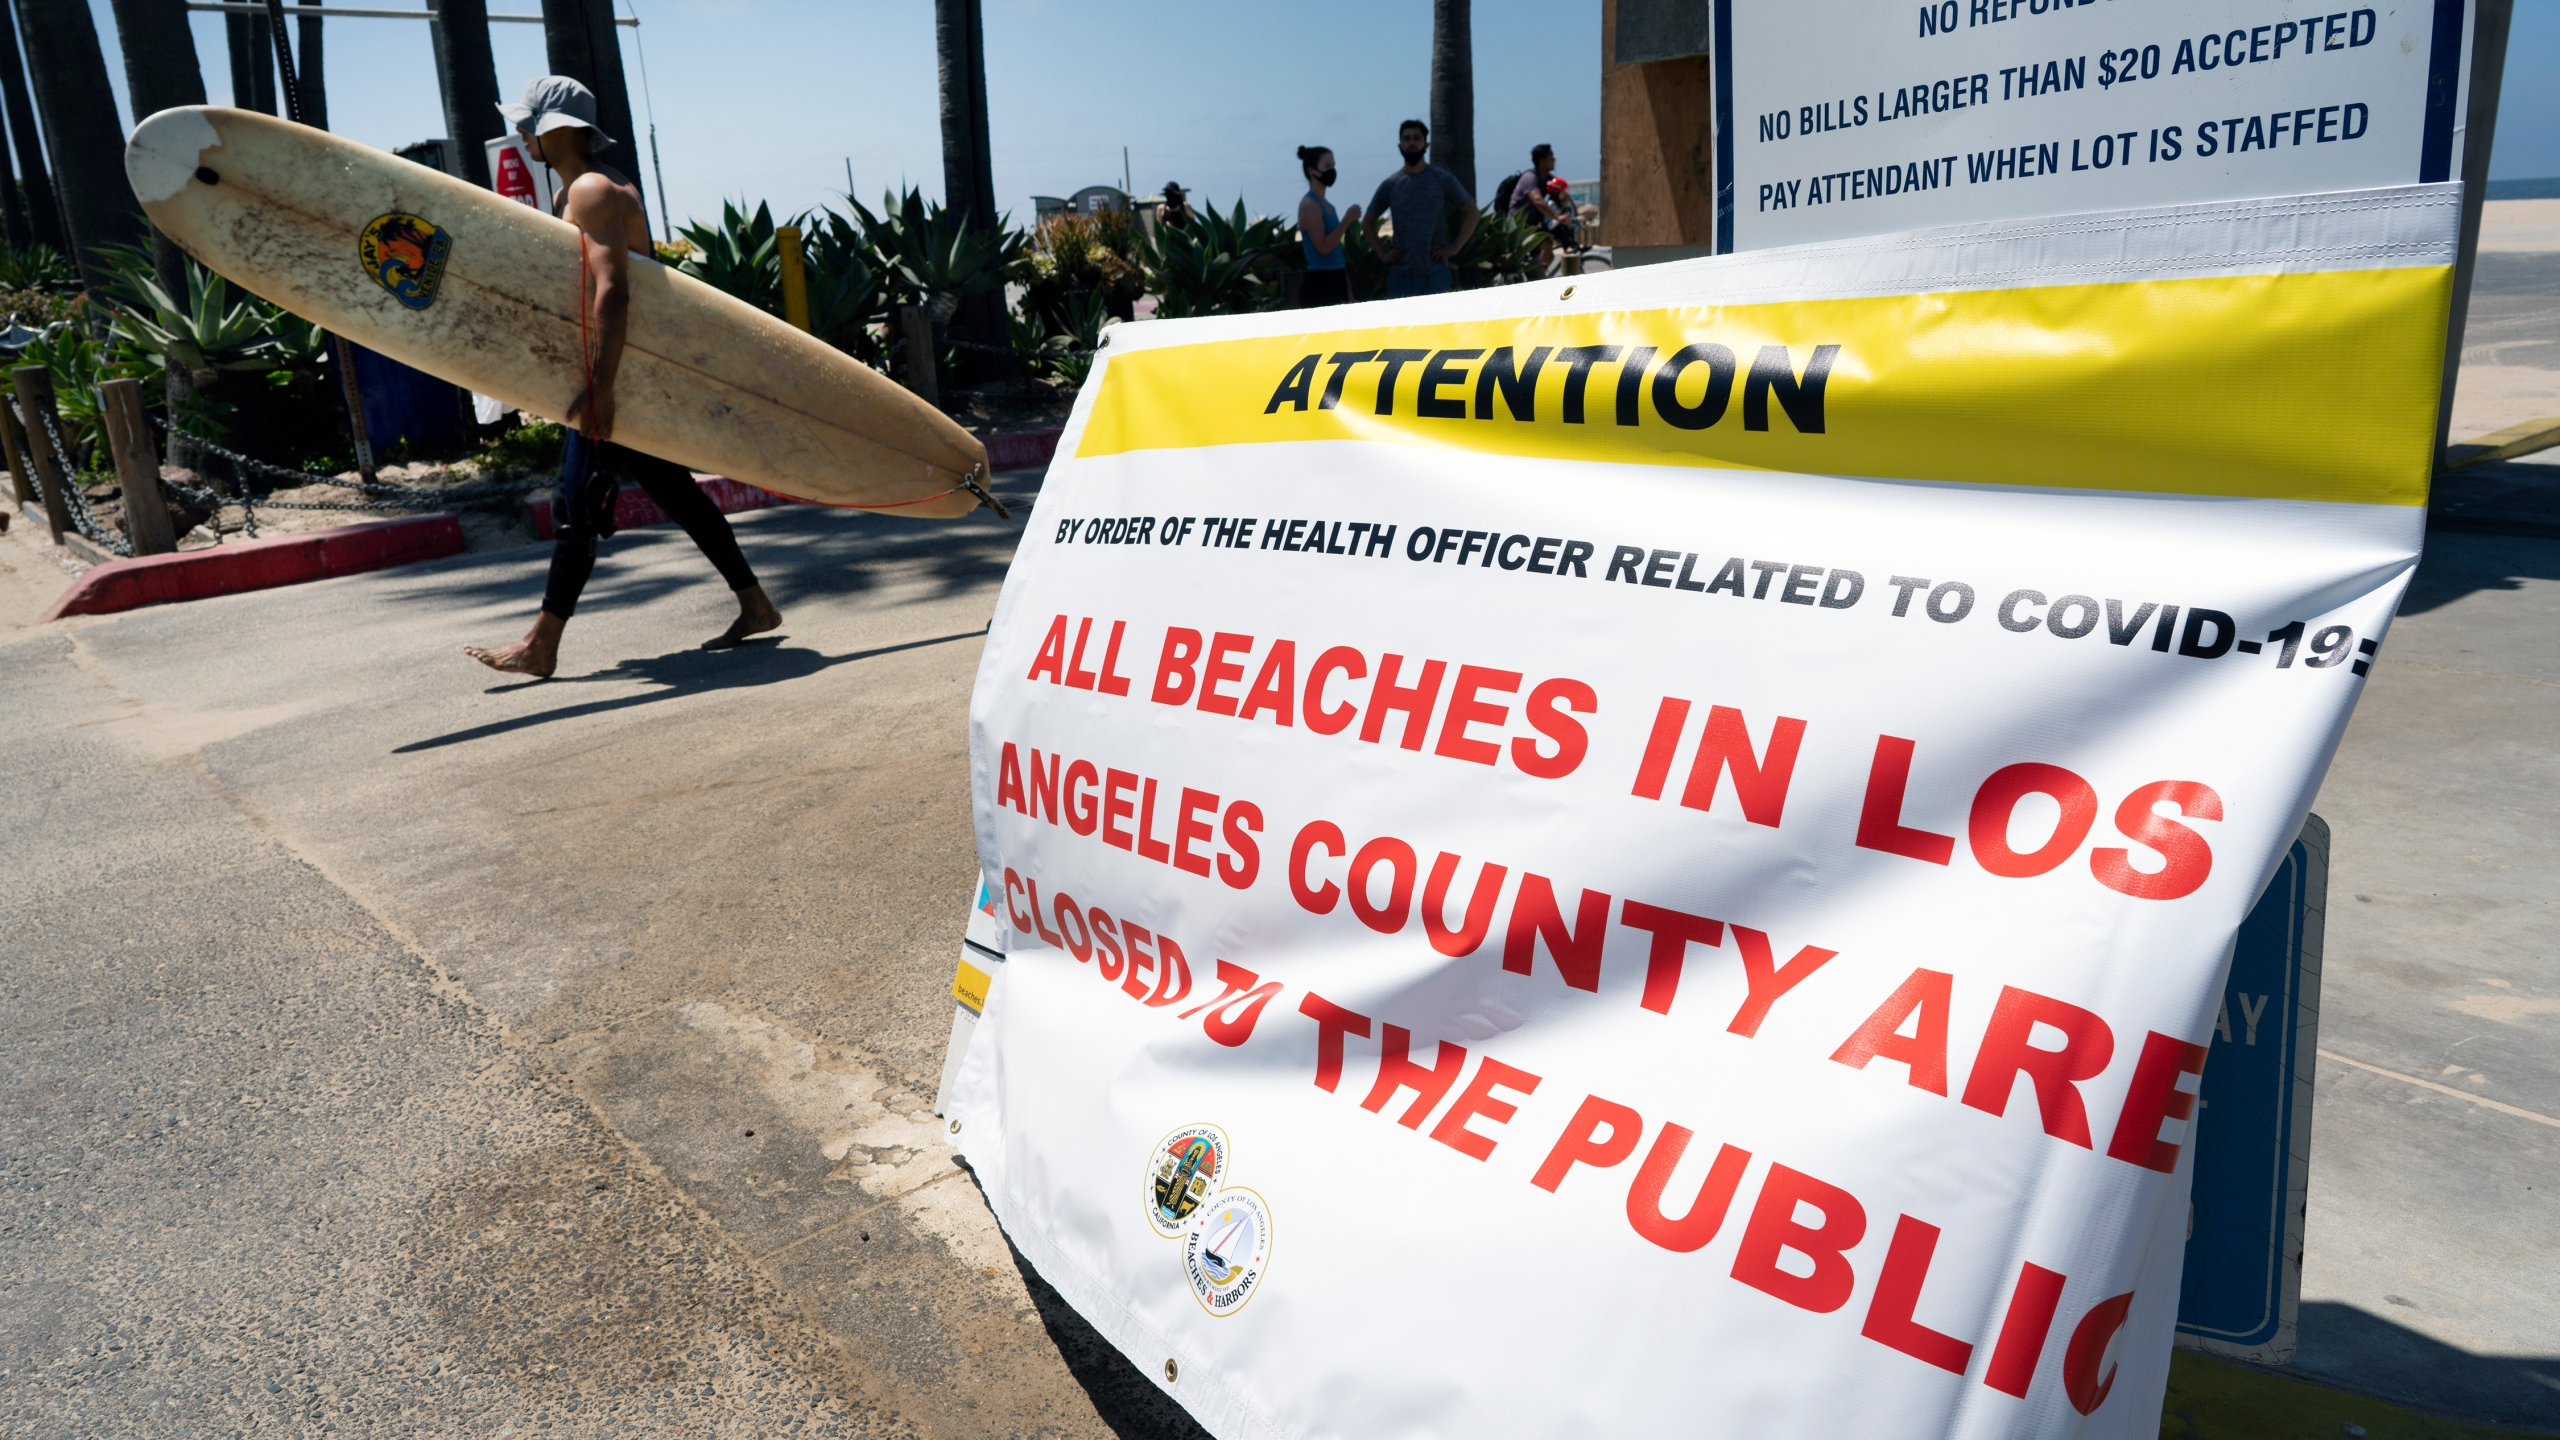 A surfer walks past a beach closed sign in Venice beach on Friday, July 3, 2020 in Los Angeles. The Los Angeles County Department of Public Health is ordering L.A. County beaches closed from July 3 through July 6, to prevent dangerous crowding that results in the spread of deadly COVID-19. California's governor is urging people to wear masks and skip Fourth of July family gatherings as the state's coronavirus tally rises. (AP Photo/Richard Vogel)